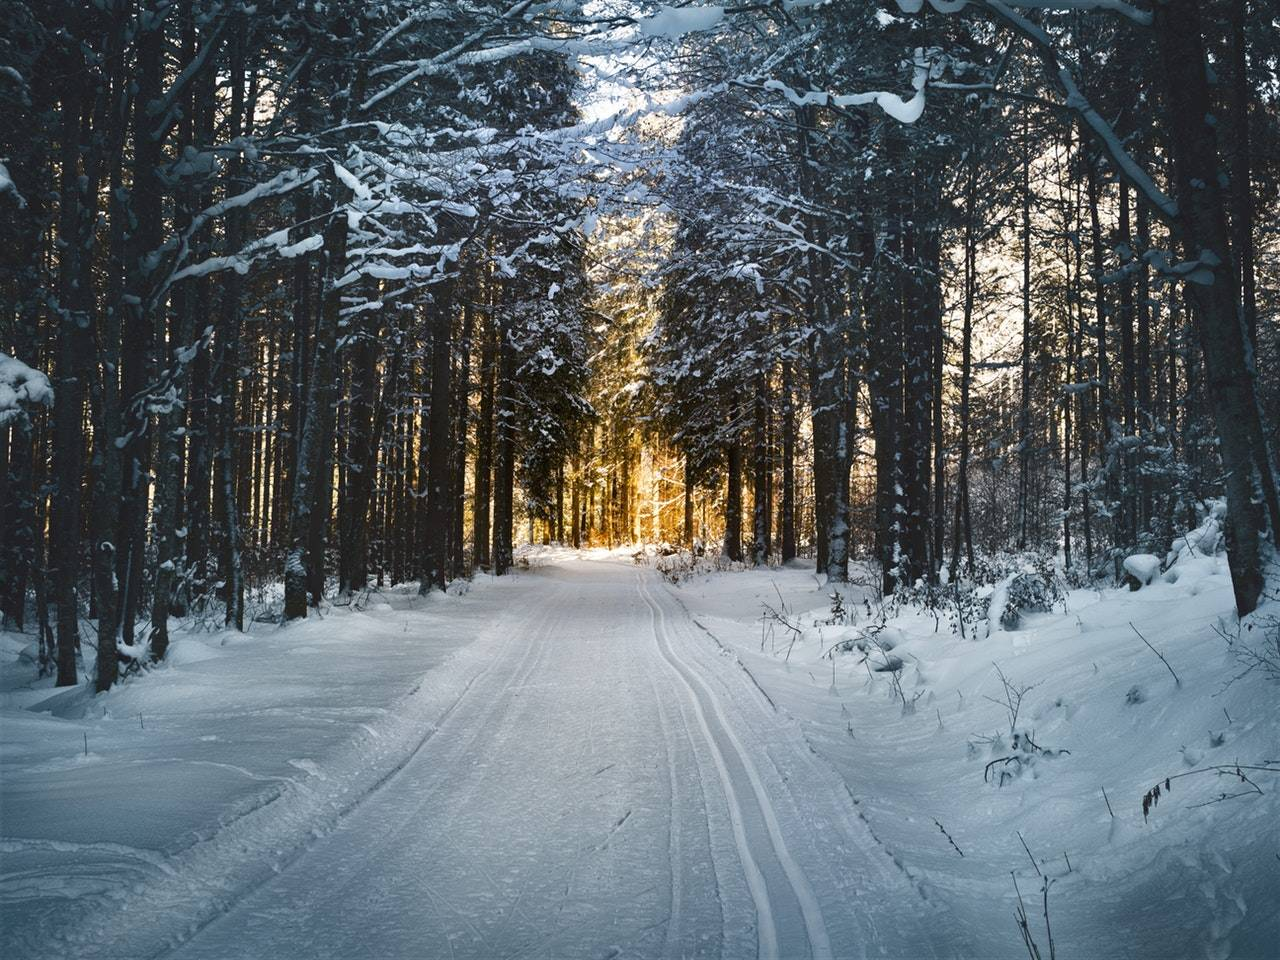 A snowy road surrounded by tall snowy trees